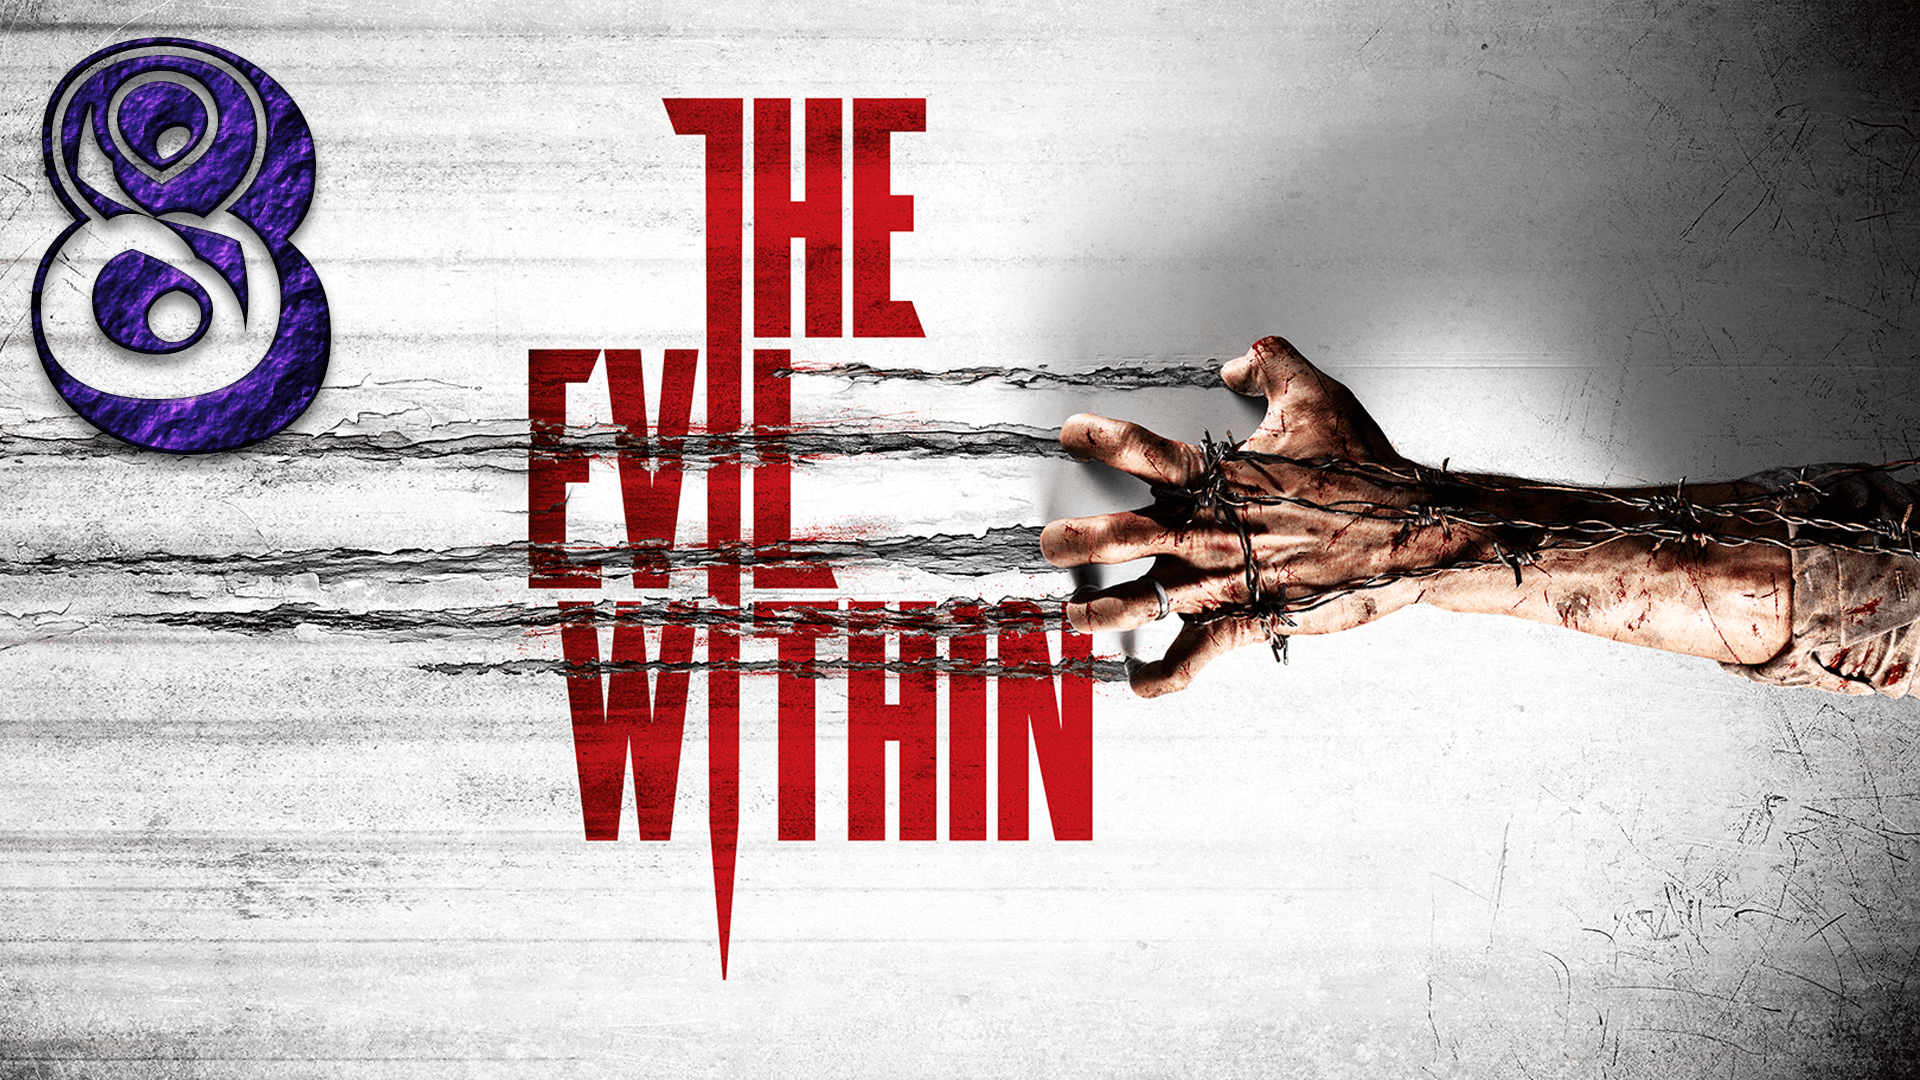 Let's play The Evil Within. El gran reencuentro, parte 8